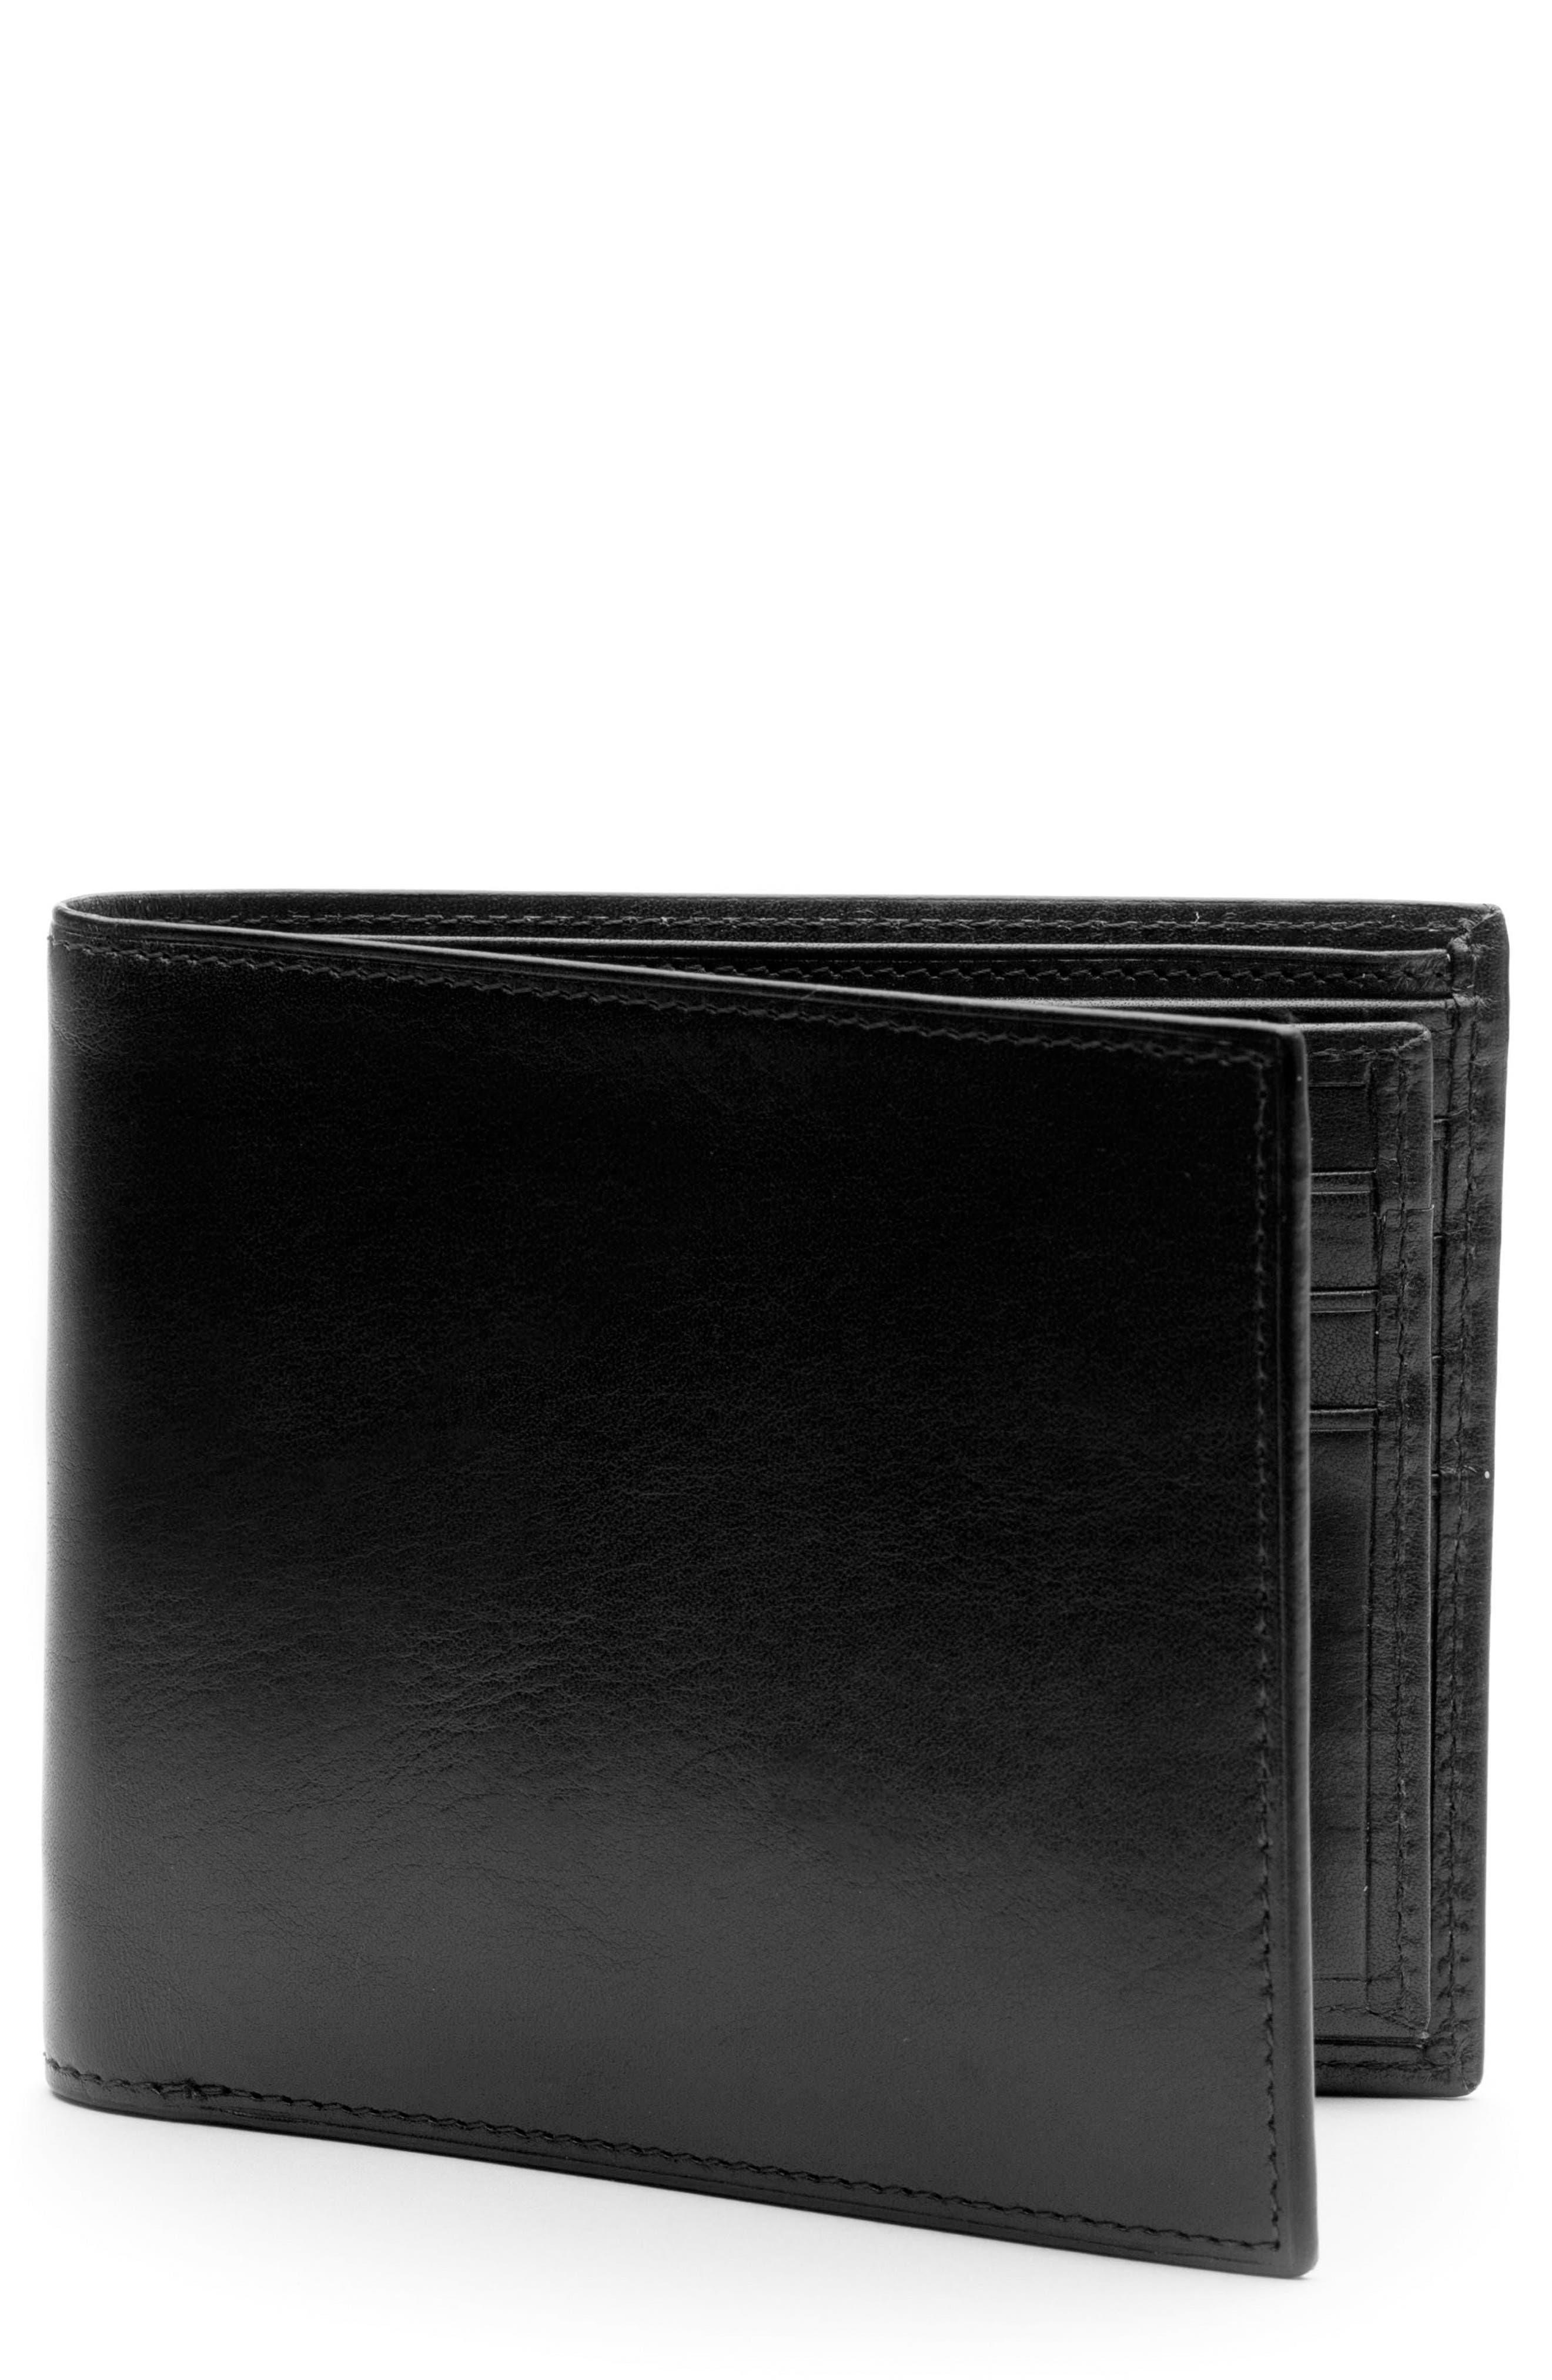 Bosca Aged Leather Executive RIFD Wallet